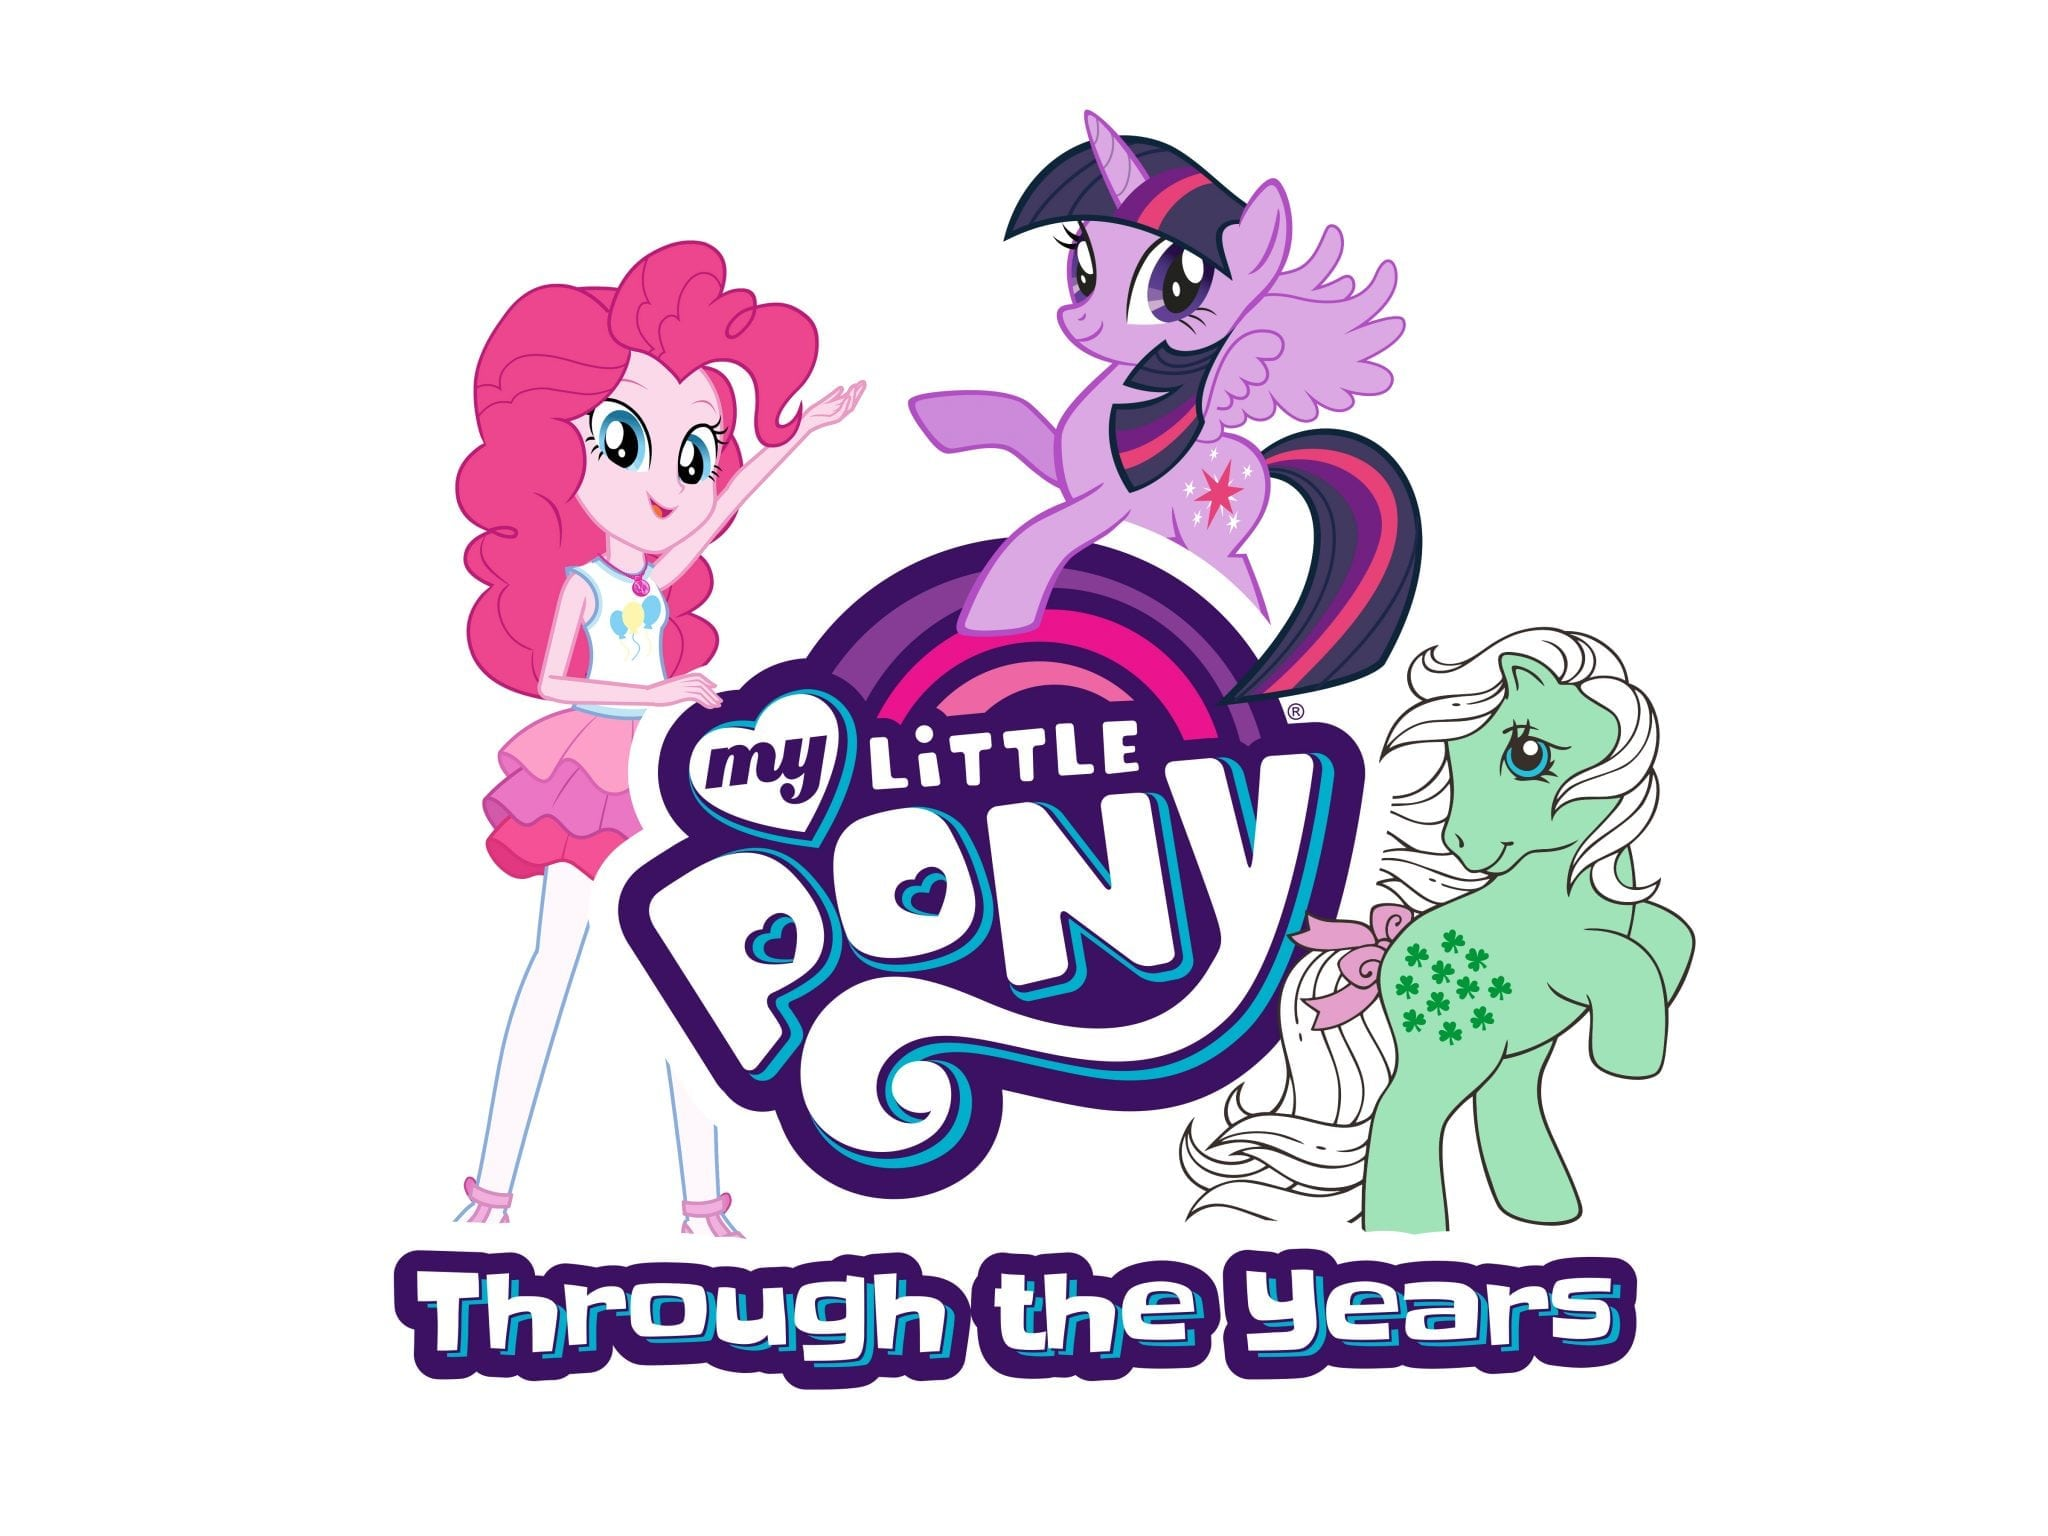 My Little Pony Through the Years: A Super-Saturday Family Screening Celebration!